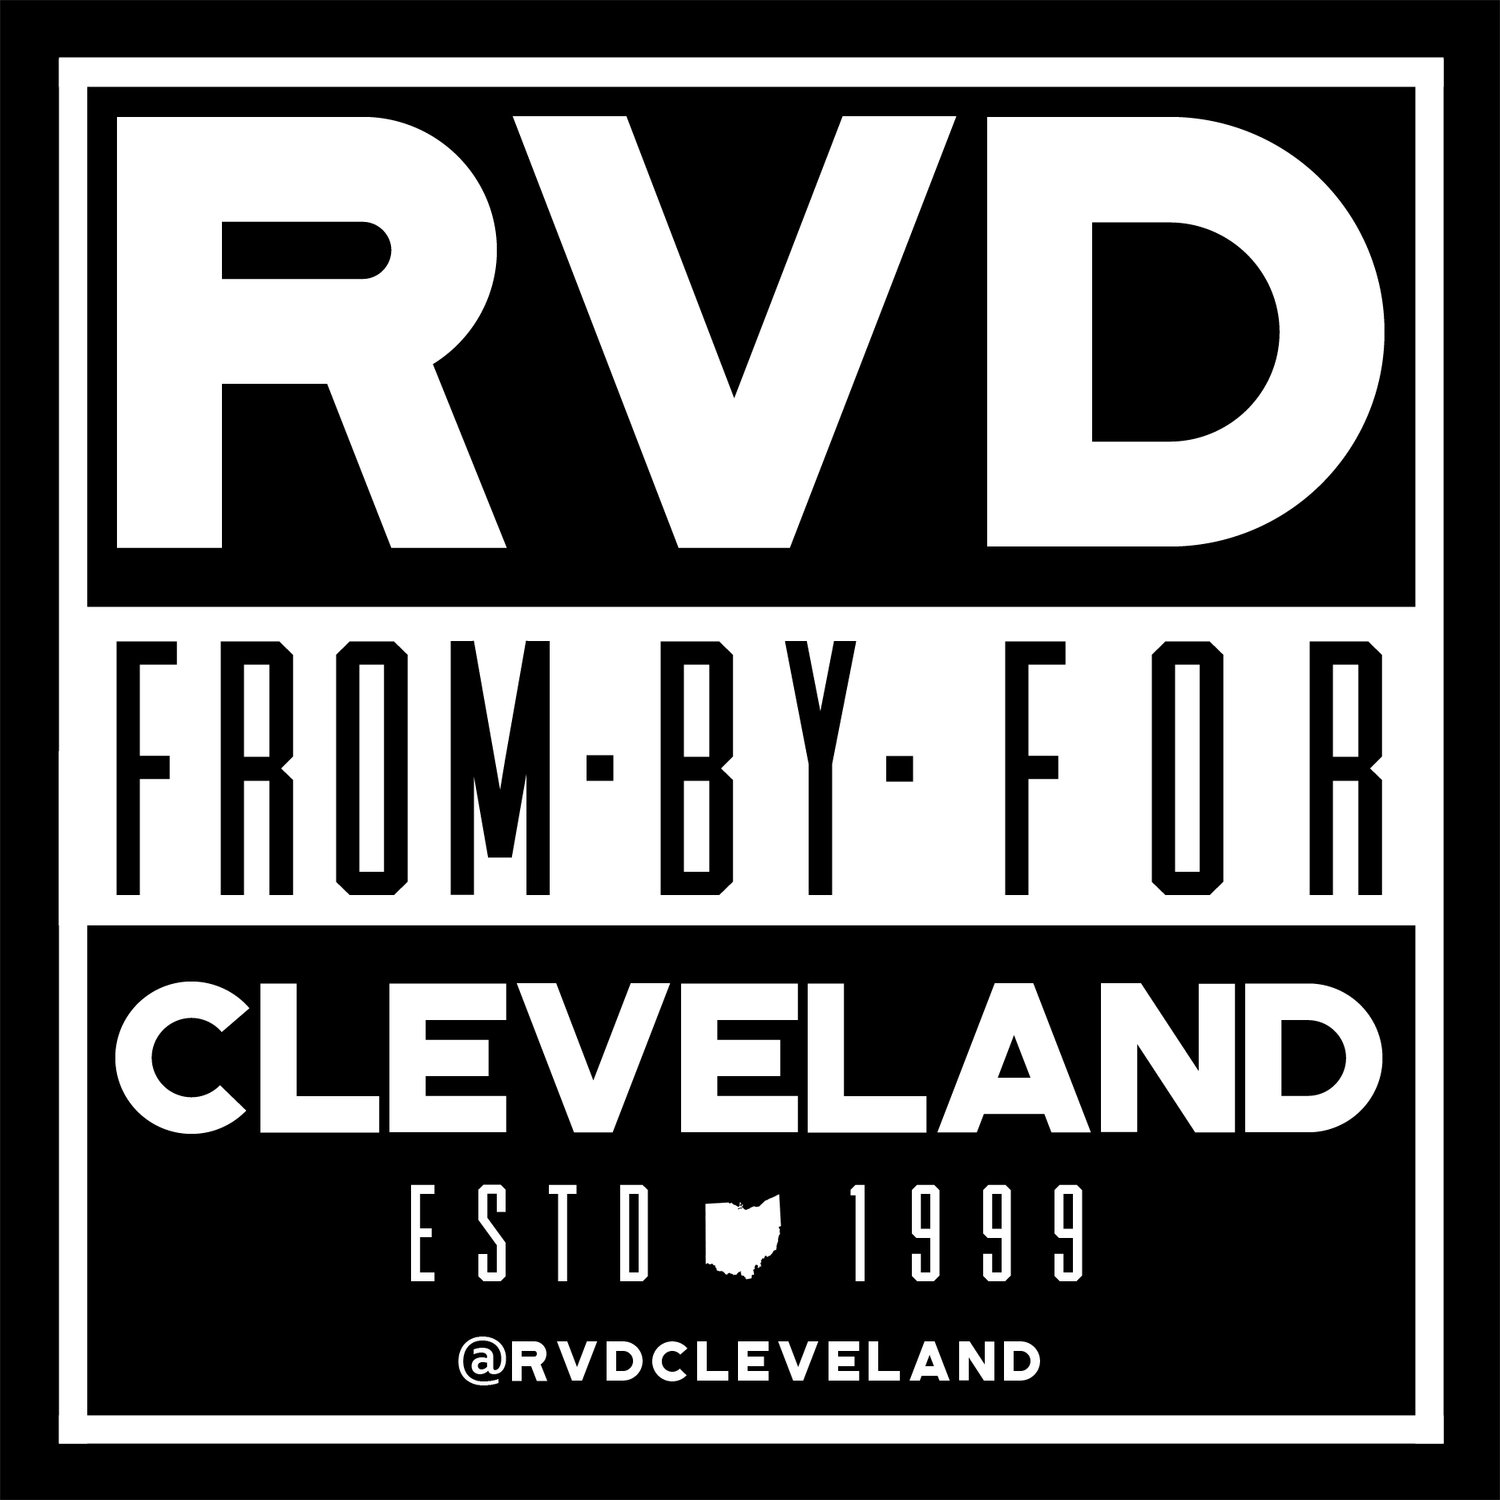 RVD Cleveland